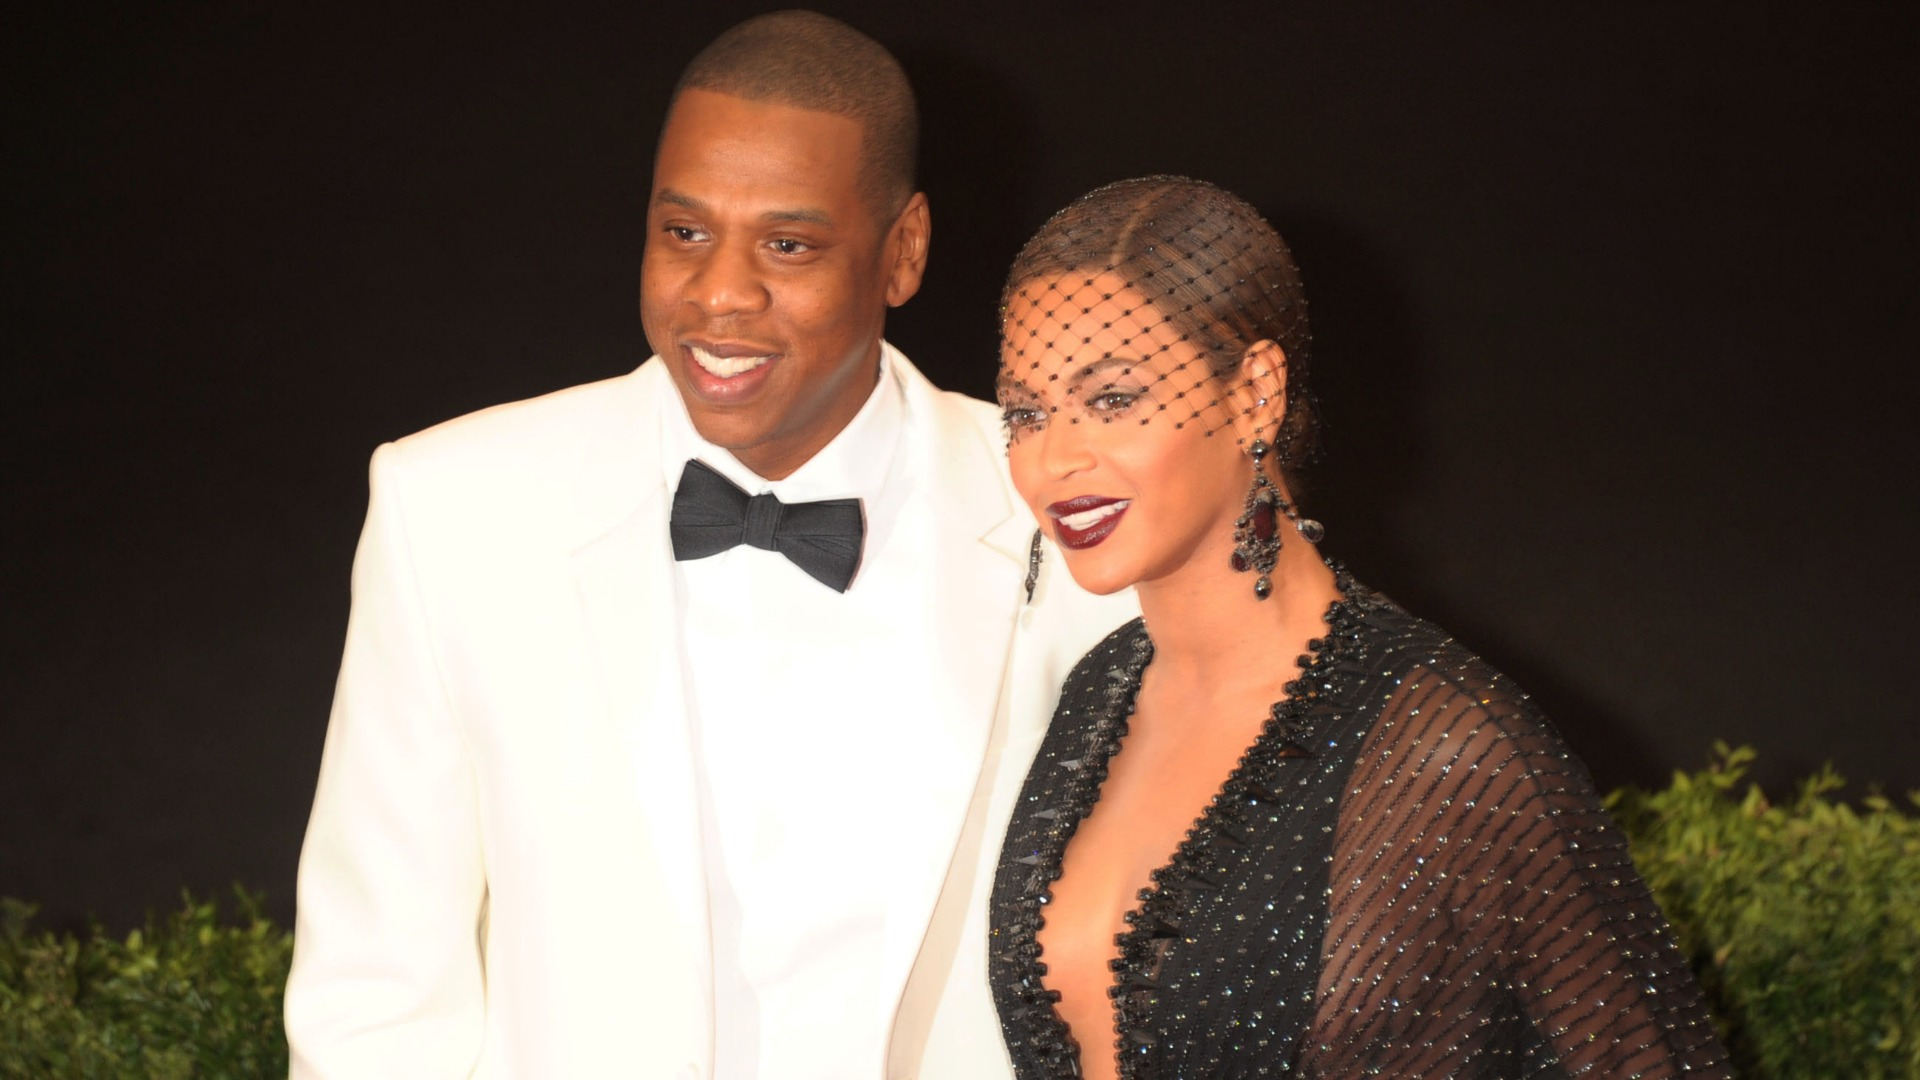 Beyonce and Jay Z share a rare glimpse into their lives with home video clips